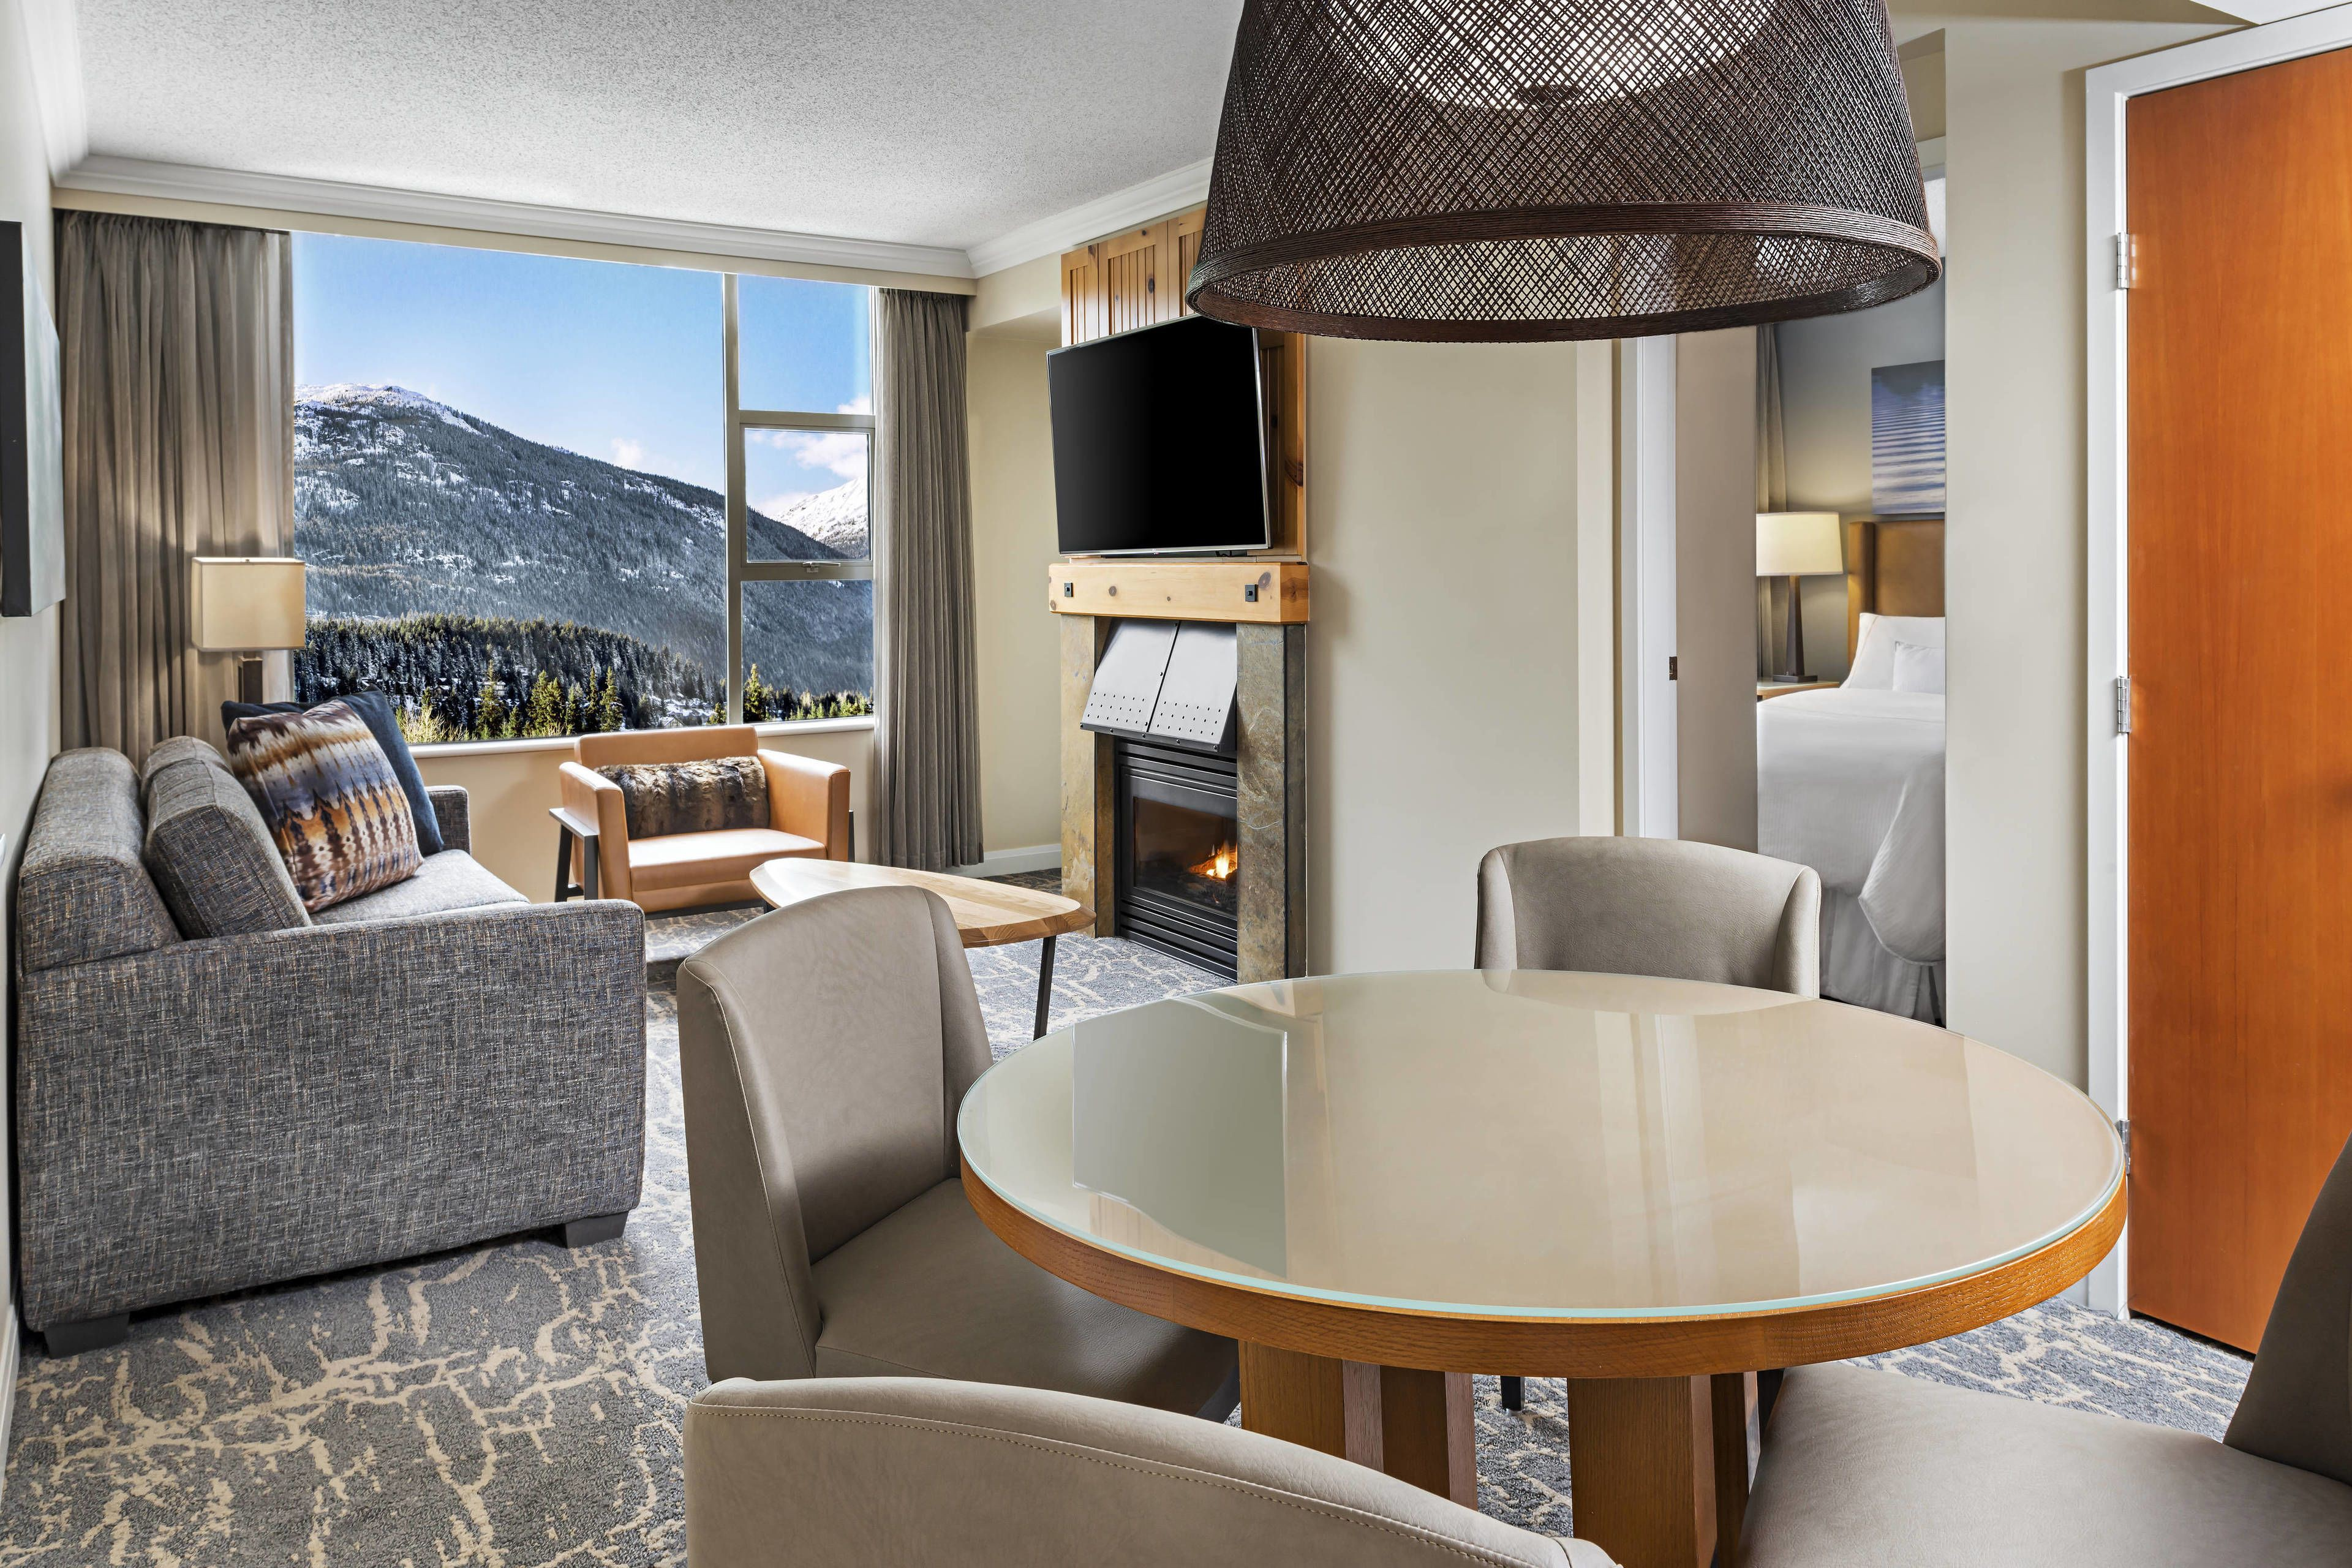 Courtesy of The Westin Resort and Spa, Whistler / Expedia